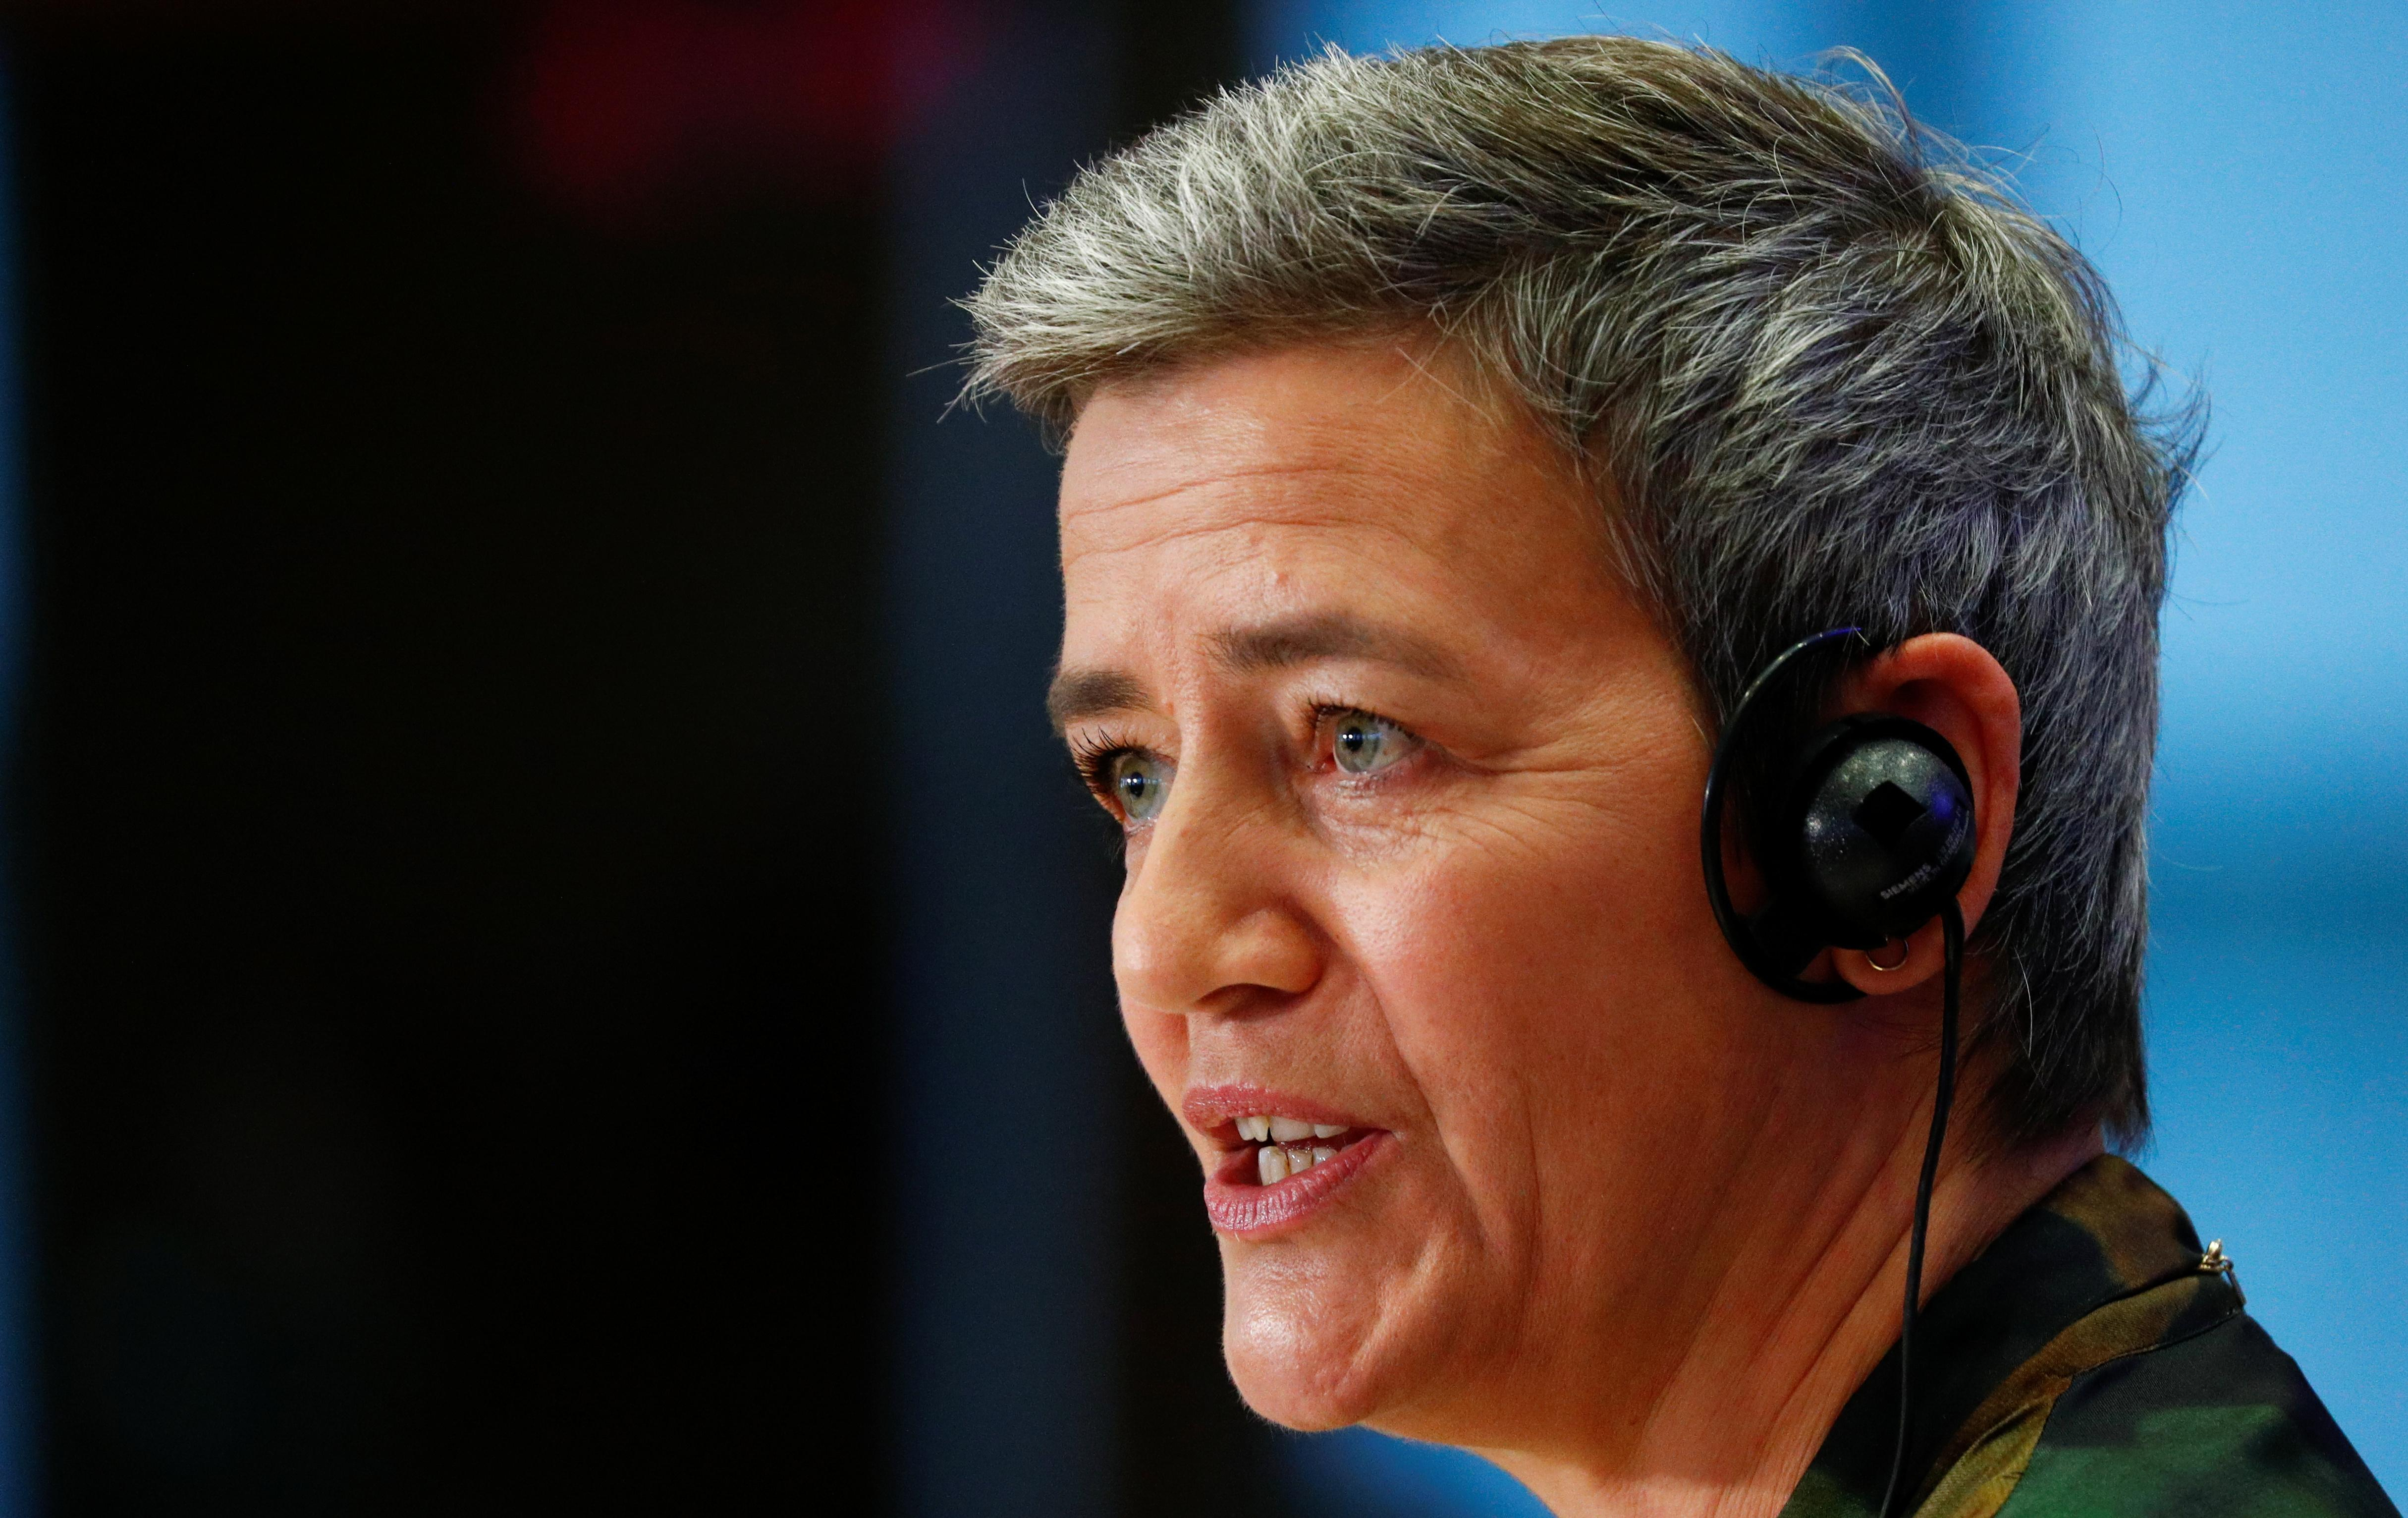 EU's Vestager to hold news conference 09:30 GMT, spotlight likely...